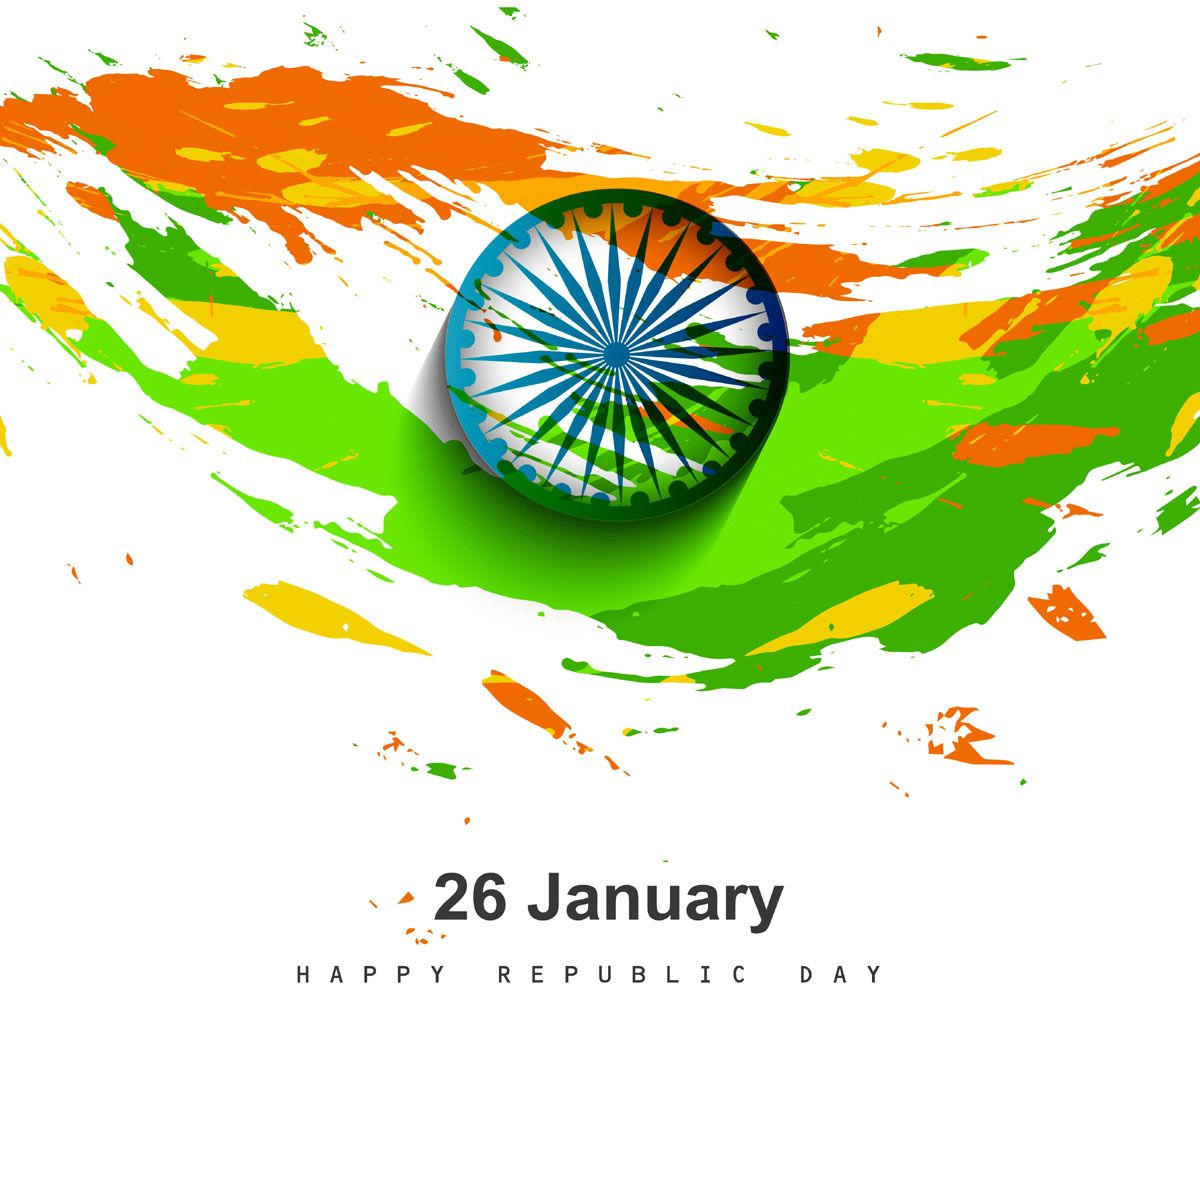 Happy republic day wallpapers happy republic day pinterest happy republic day wallpapers m4hsunfo Image collections